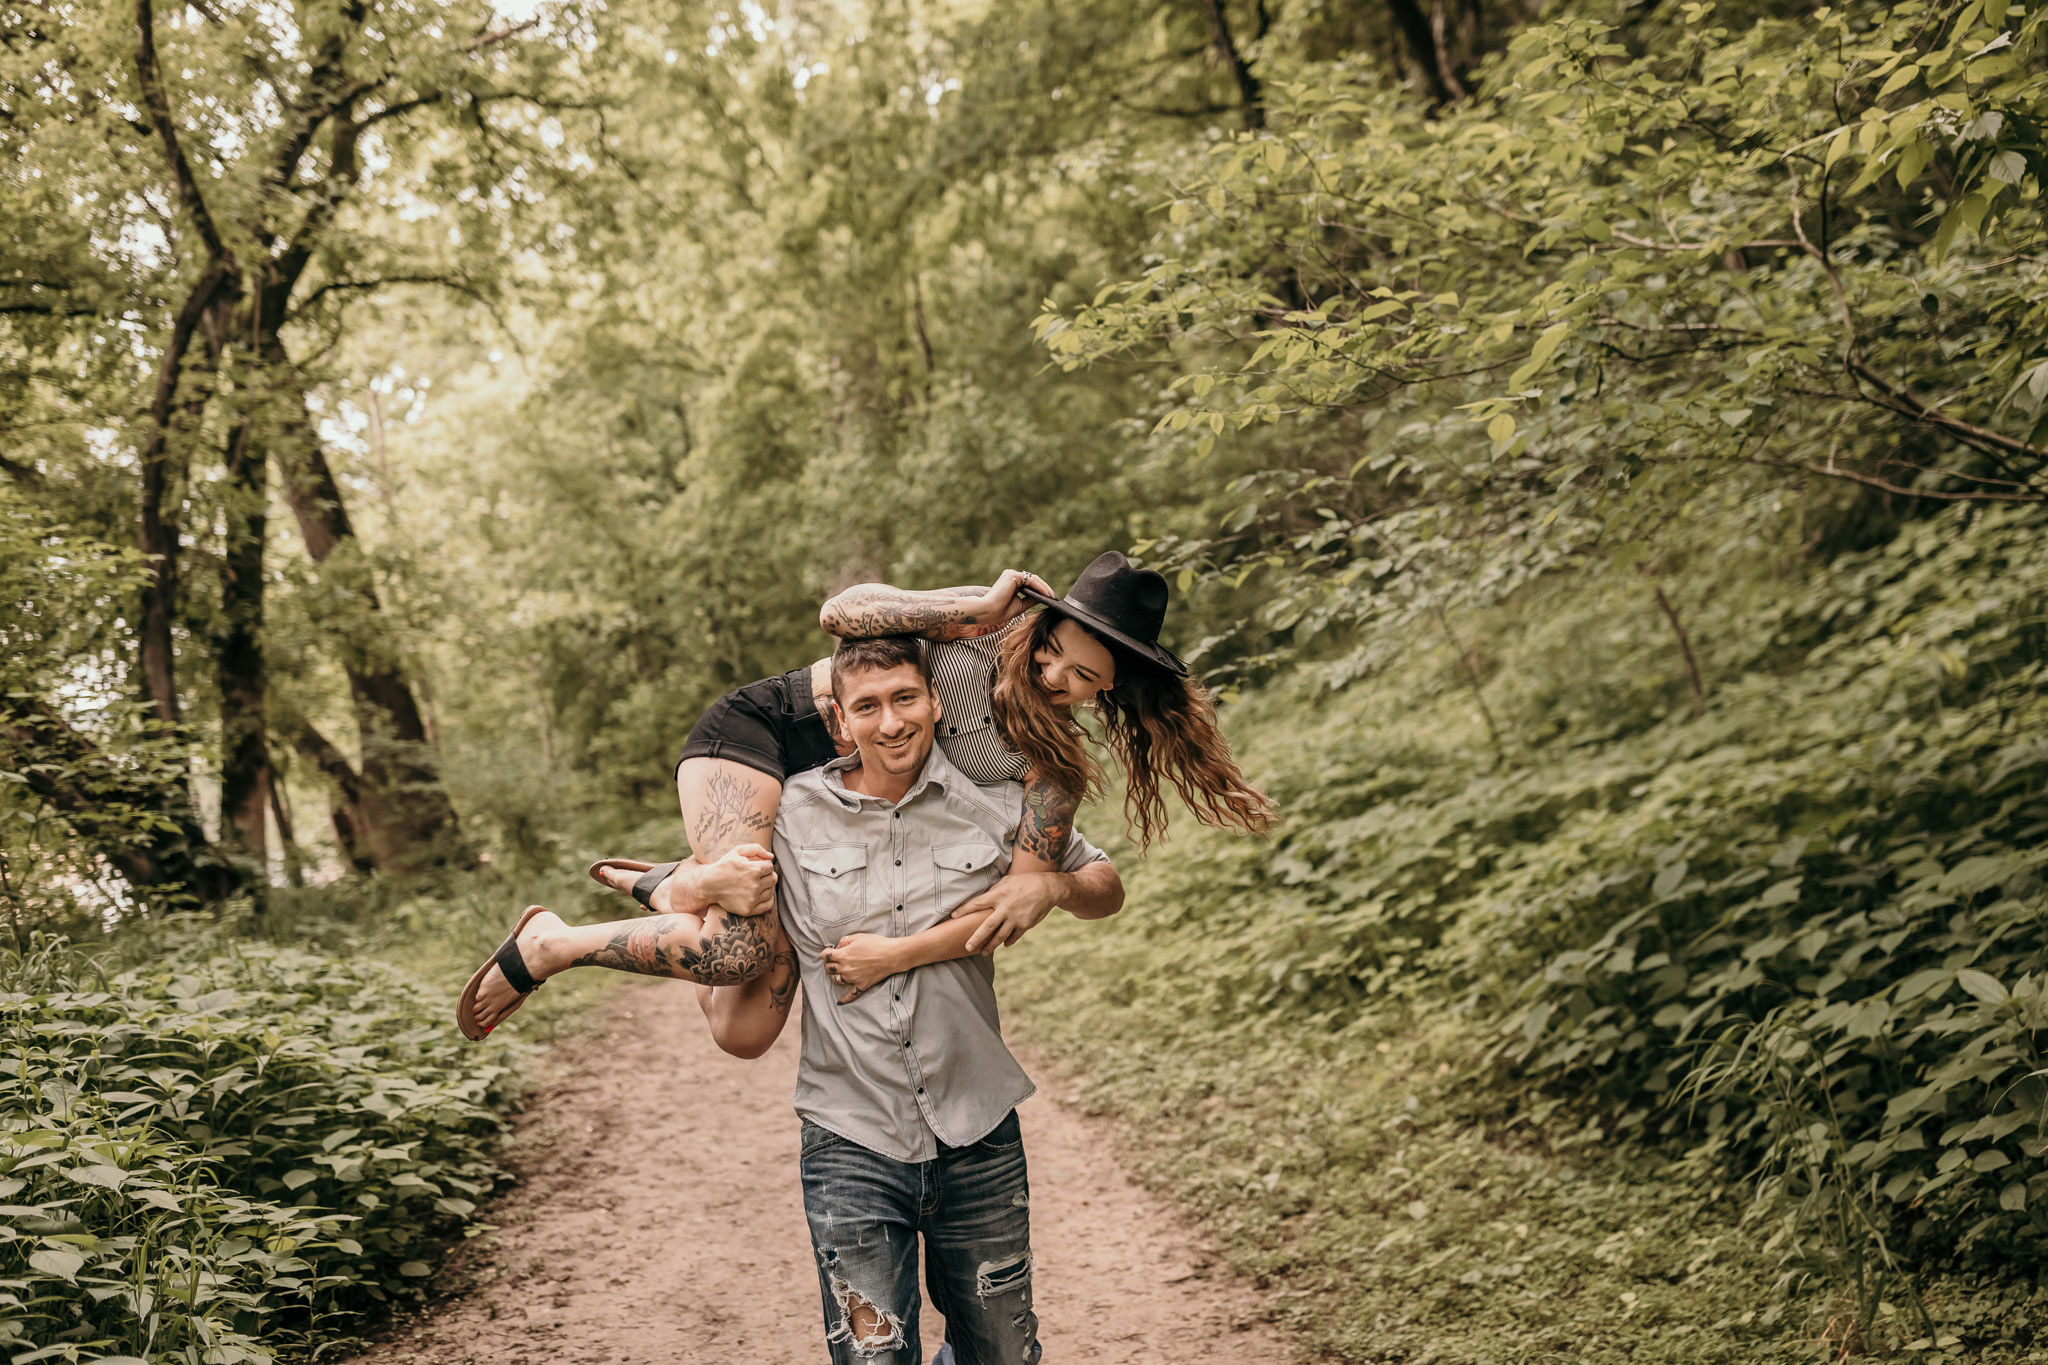 Guy carrying future bride across his shoulders